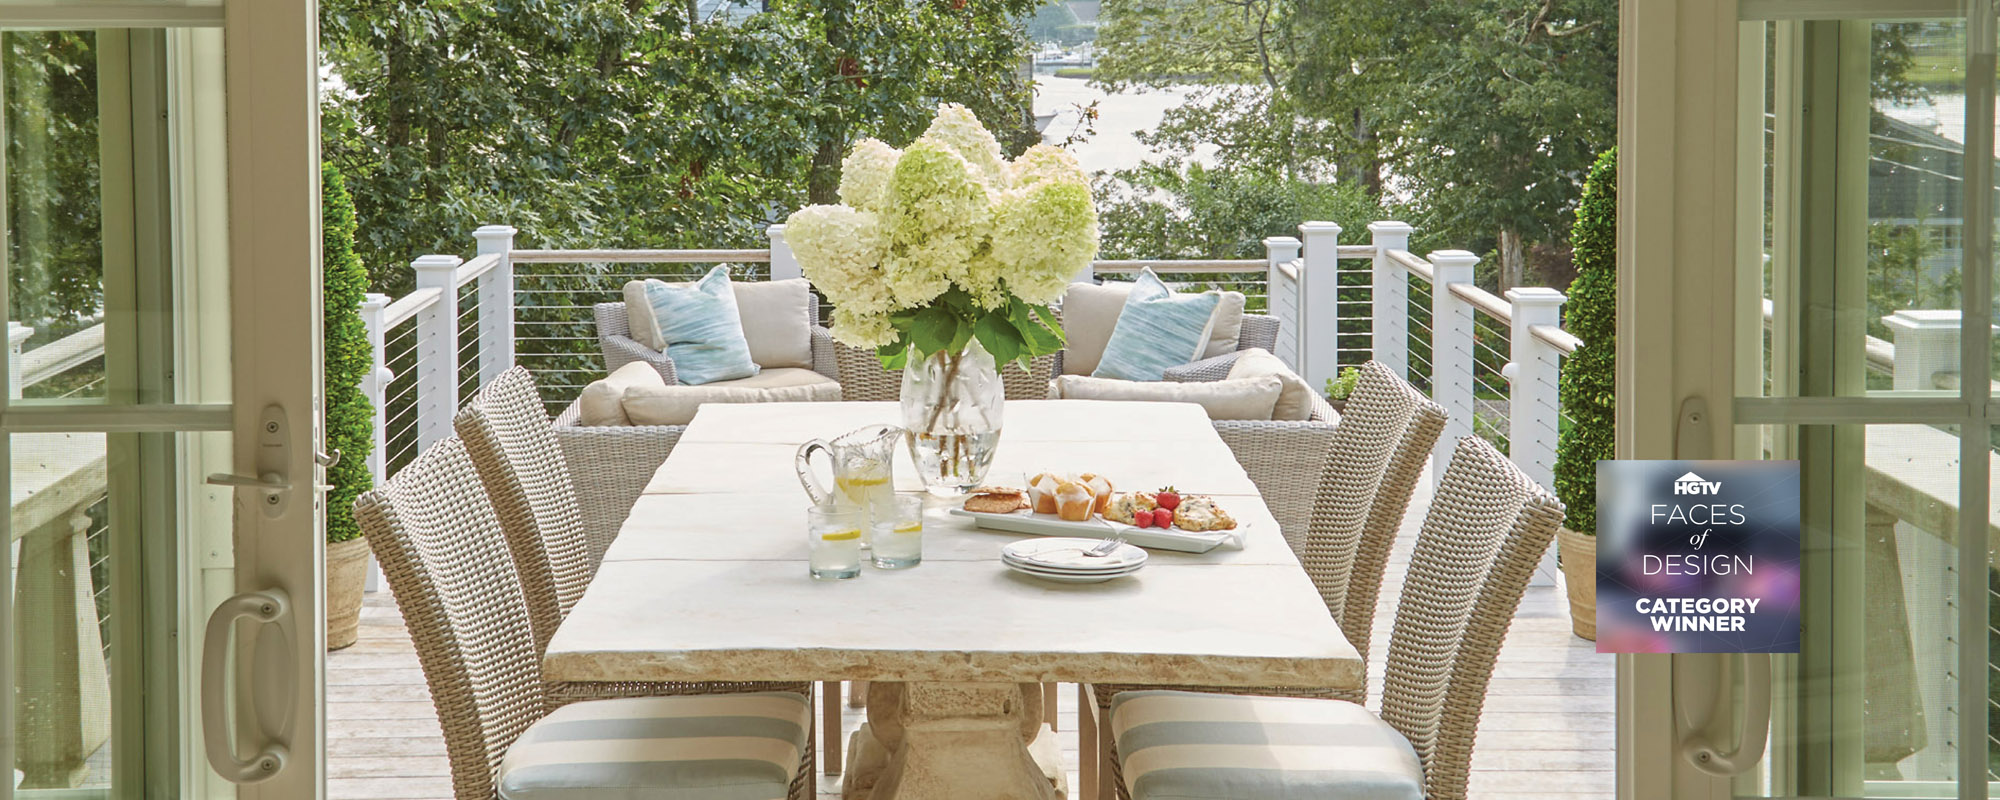 hgtv-casa-inspired-life-deck